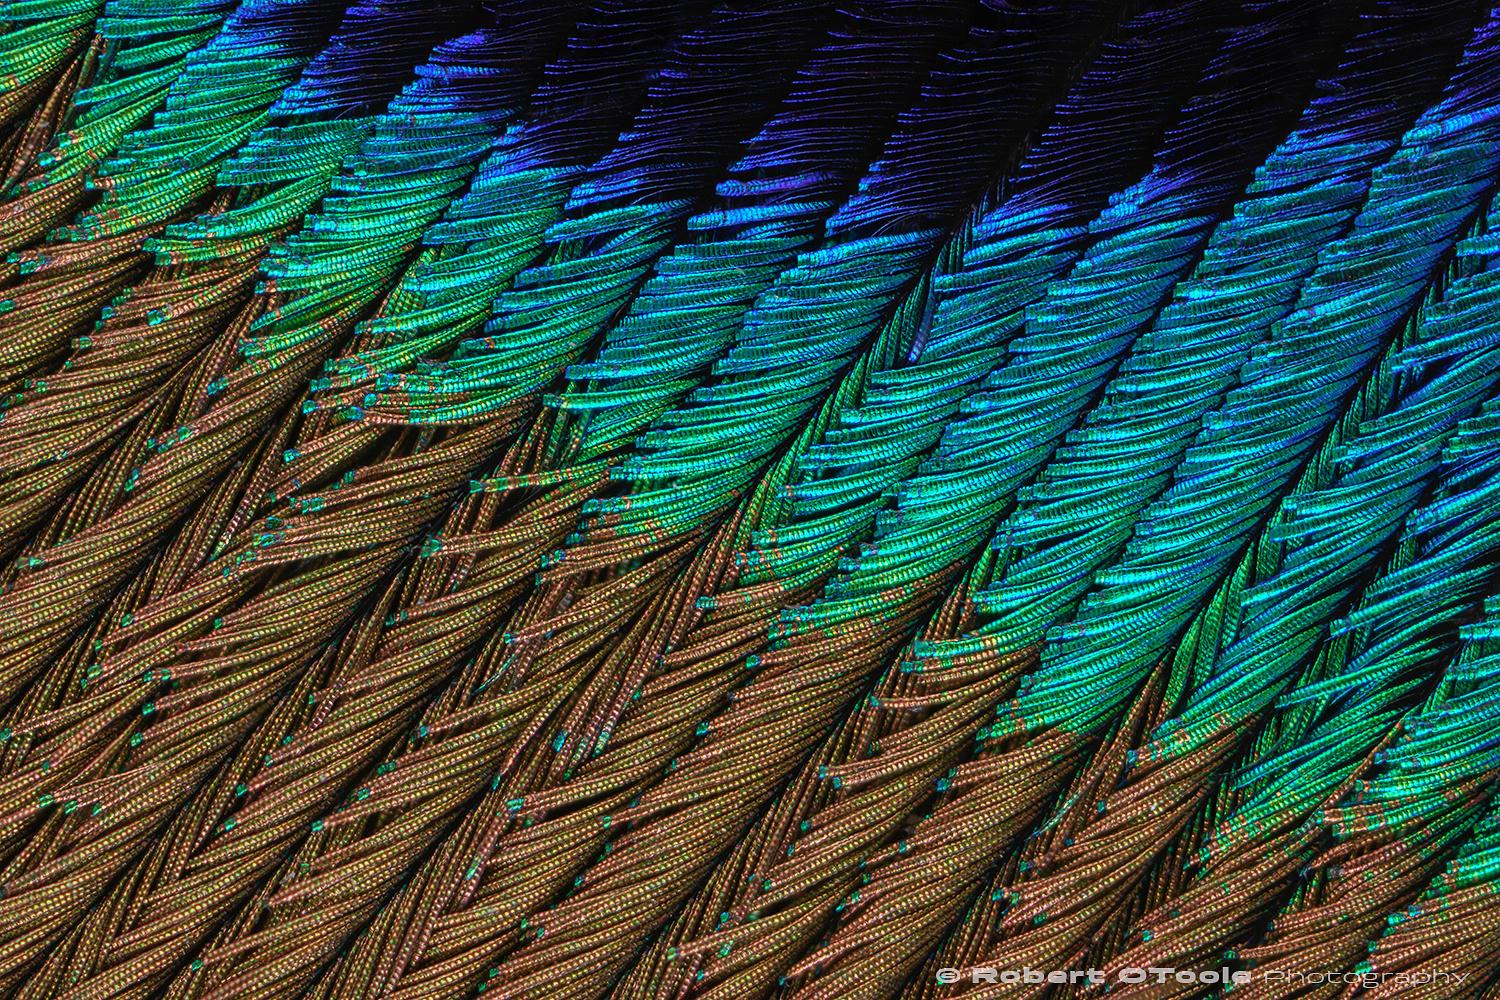 Peacock feather detail. Uncropped 6 image stack shot on a macro stand. Plan 4x Objective on Nikon D500 1/60s manual mode ISO 64 two flash units at 1/64 power.